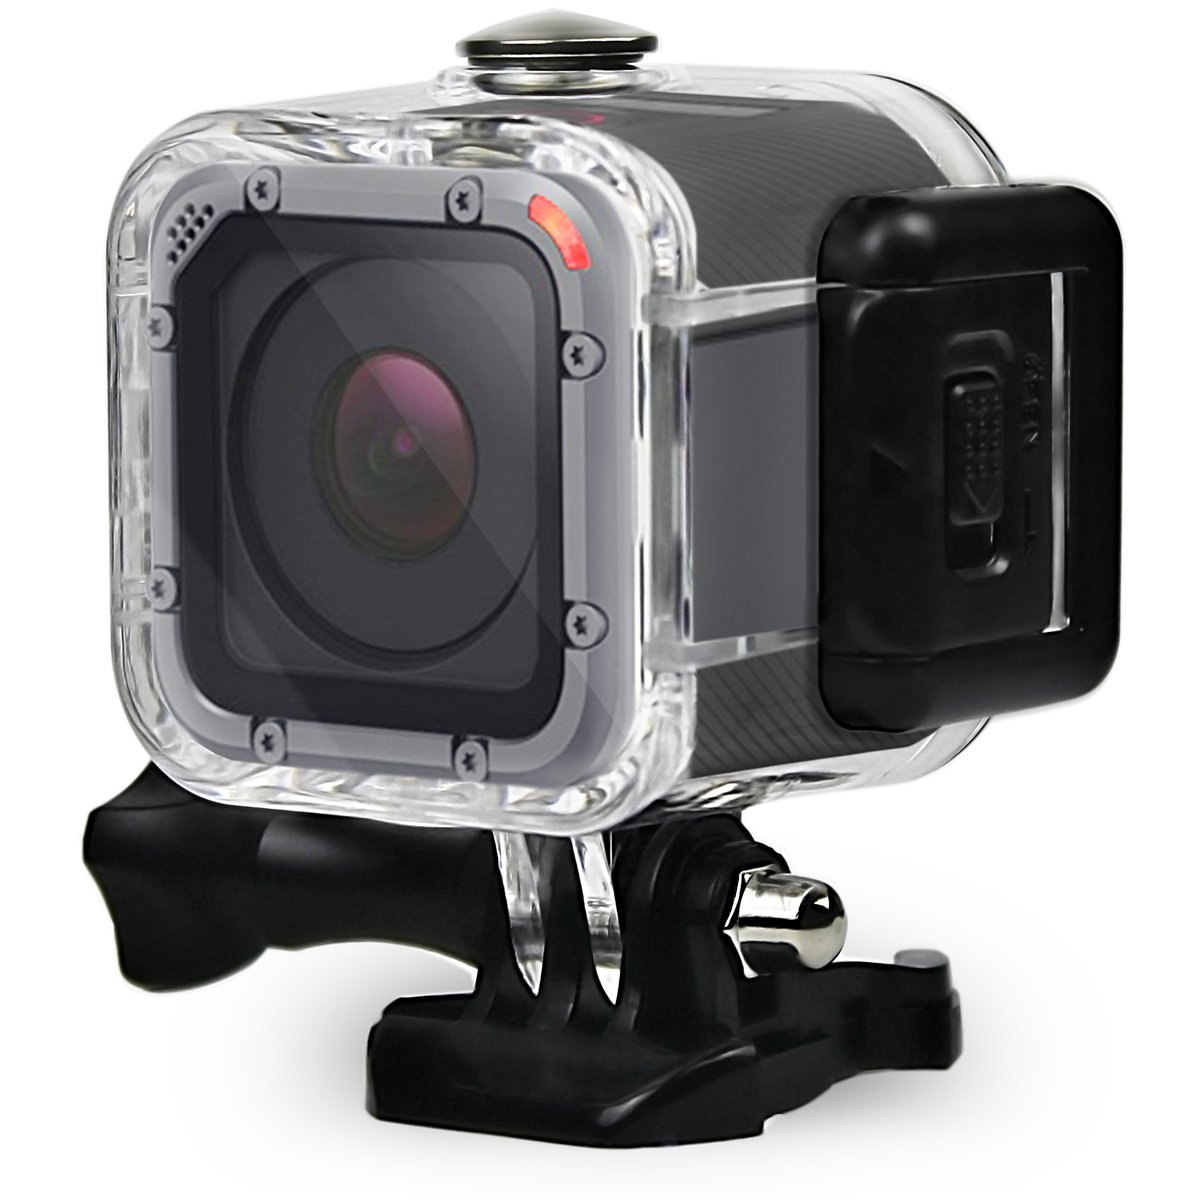 FitStill 60M Dive Housing Case for GoPro Hero 5 Session Waterproof Diving Protective Shell with Bracket Accessories for Go Pro Hero5 Session & Hero Session by FiTSTILL